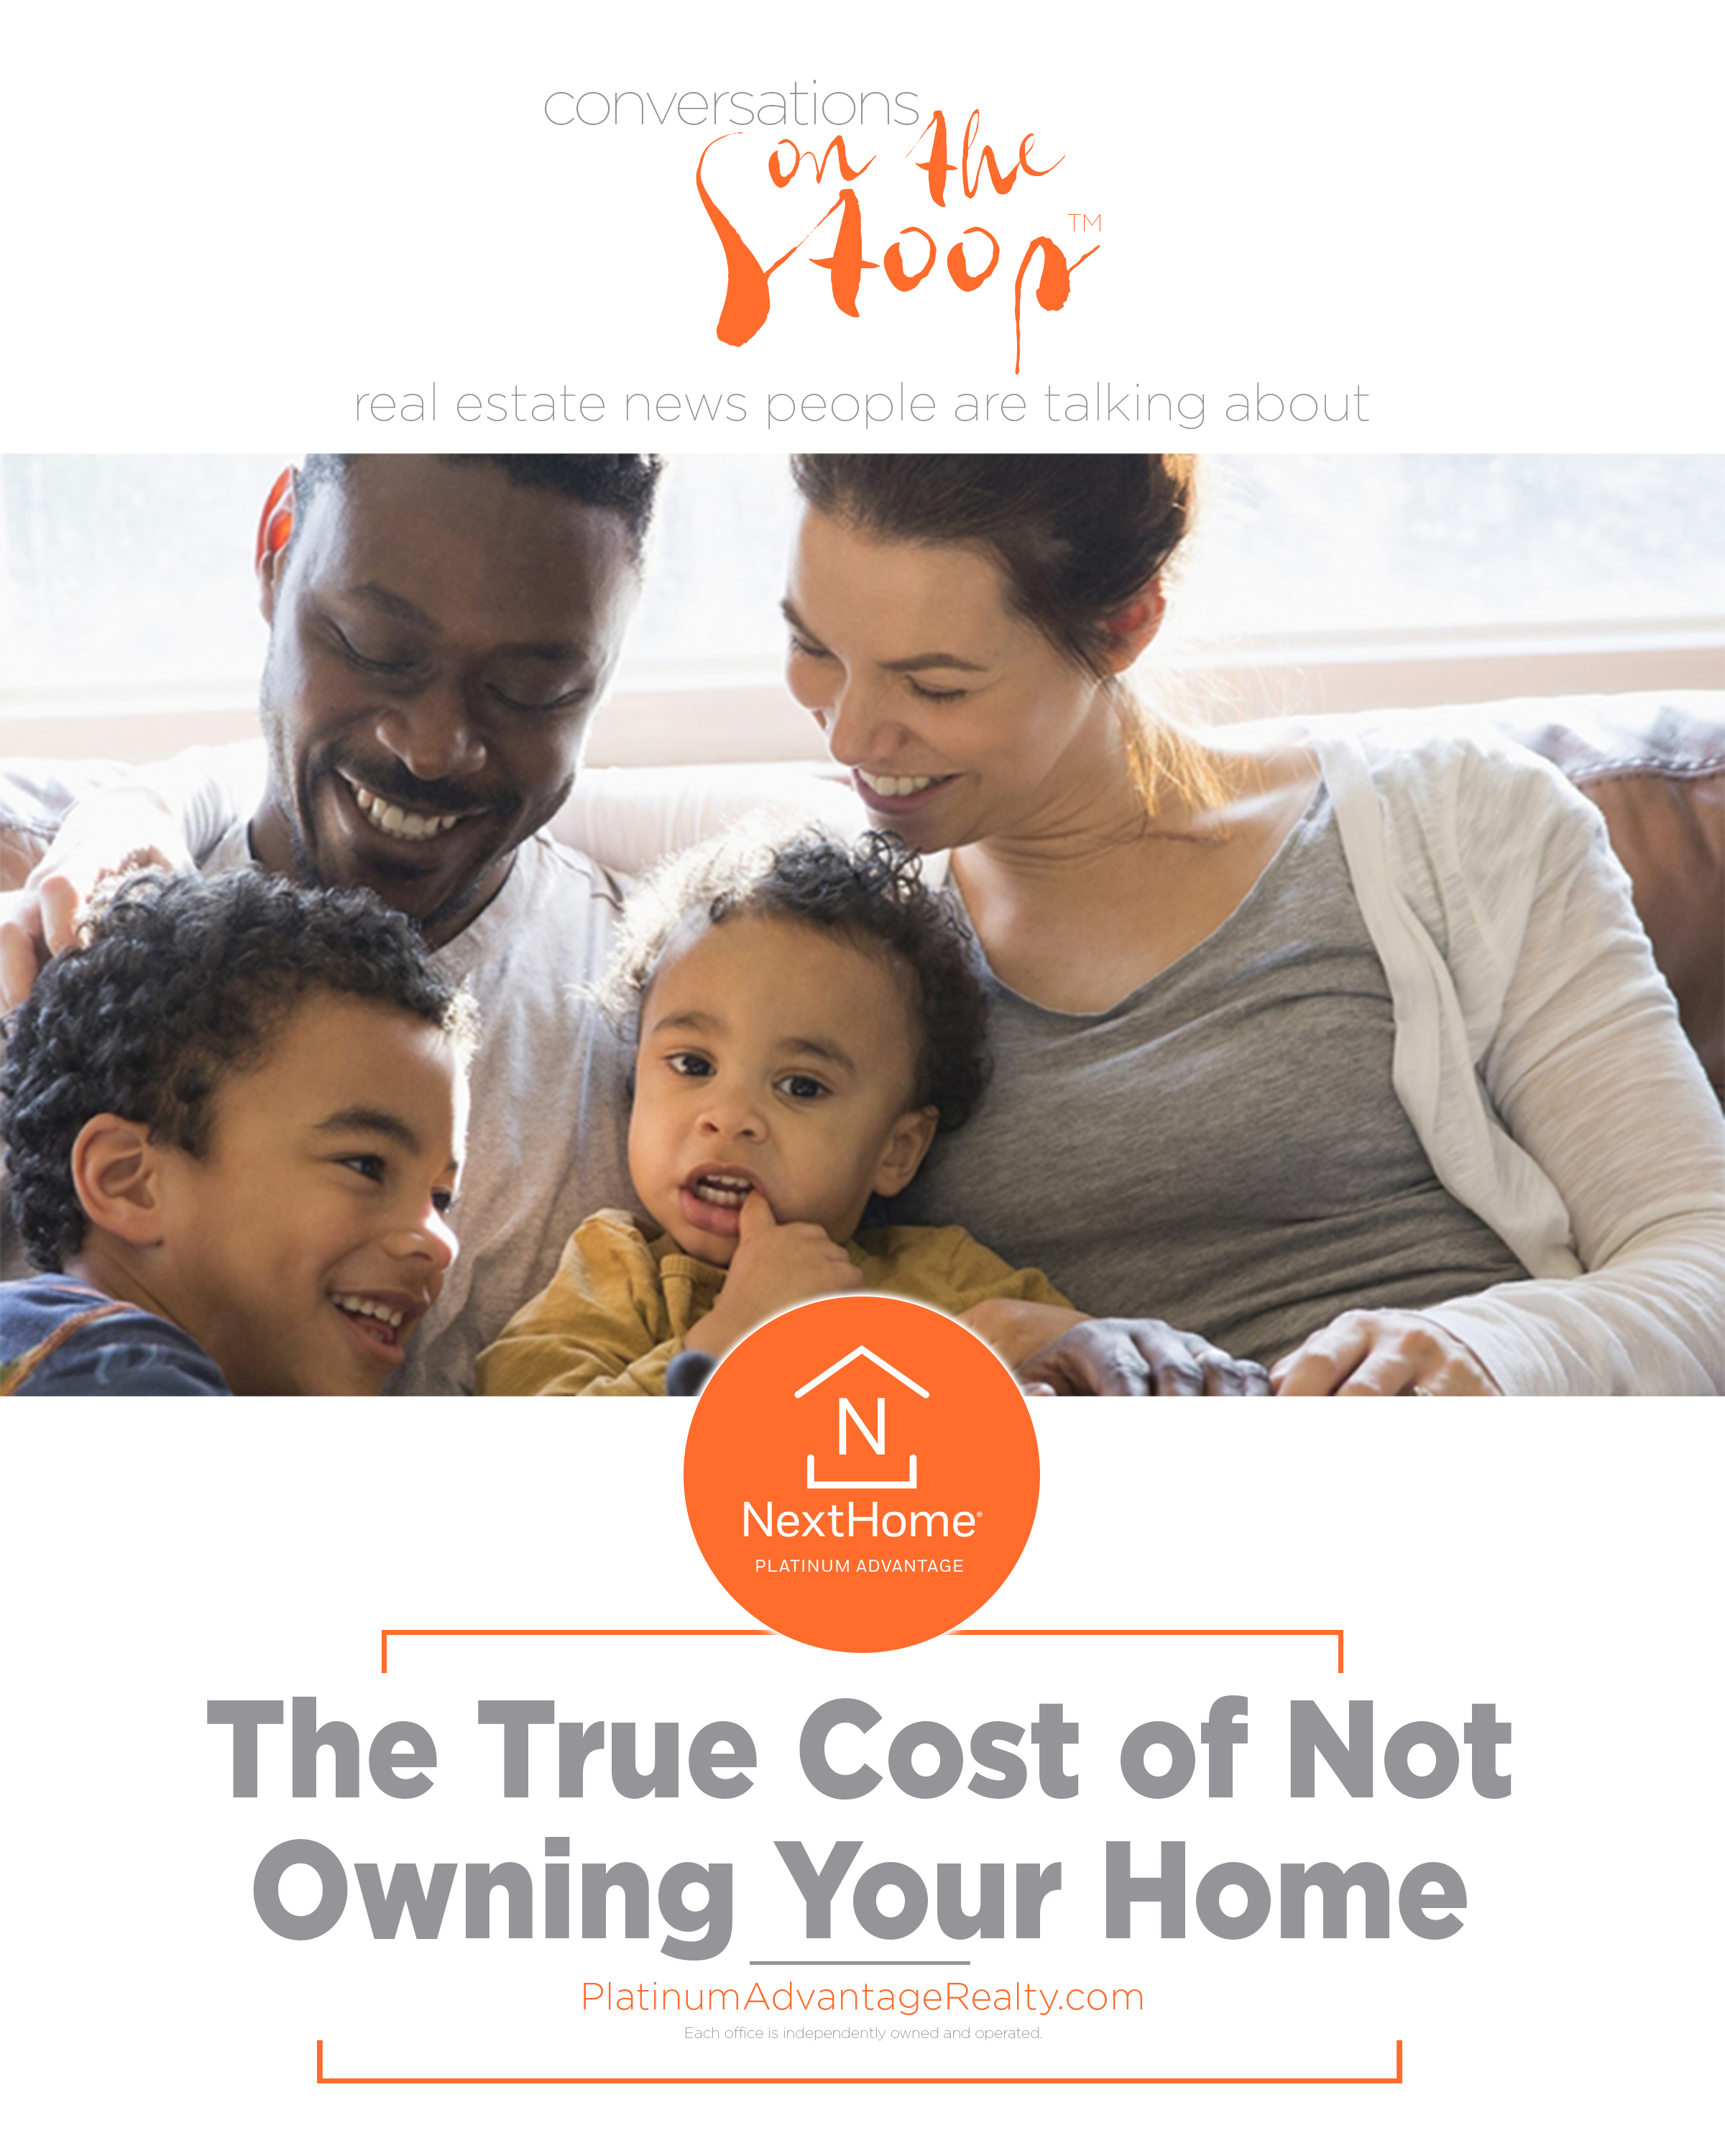 The True Cost of Not Owning Your Home